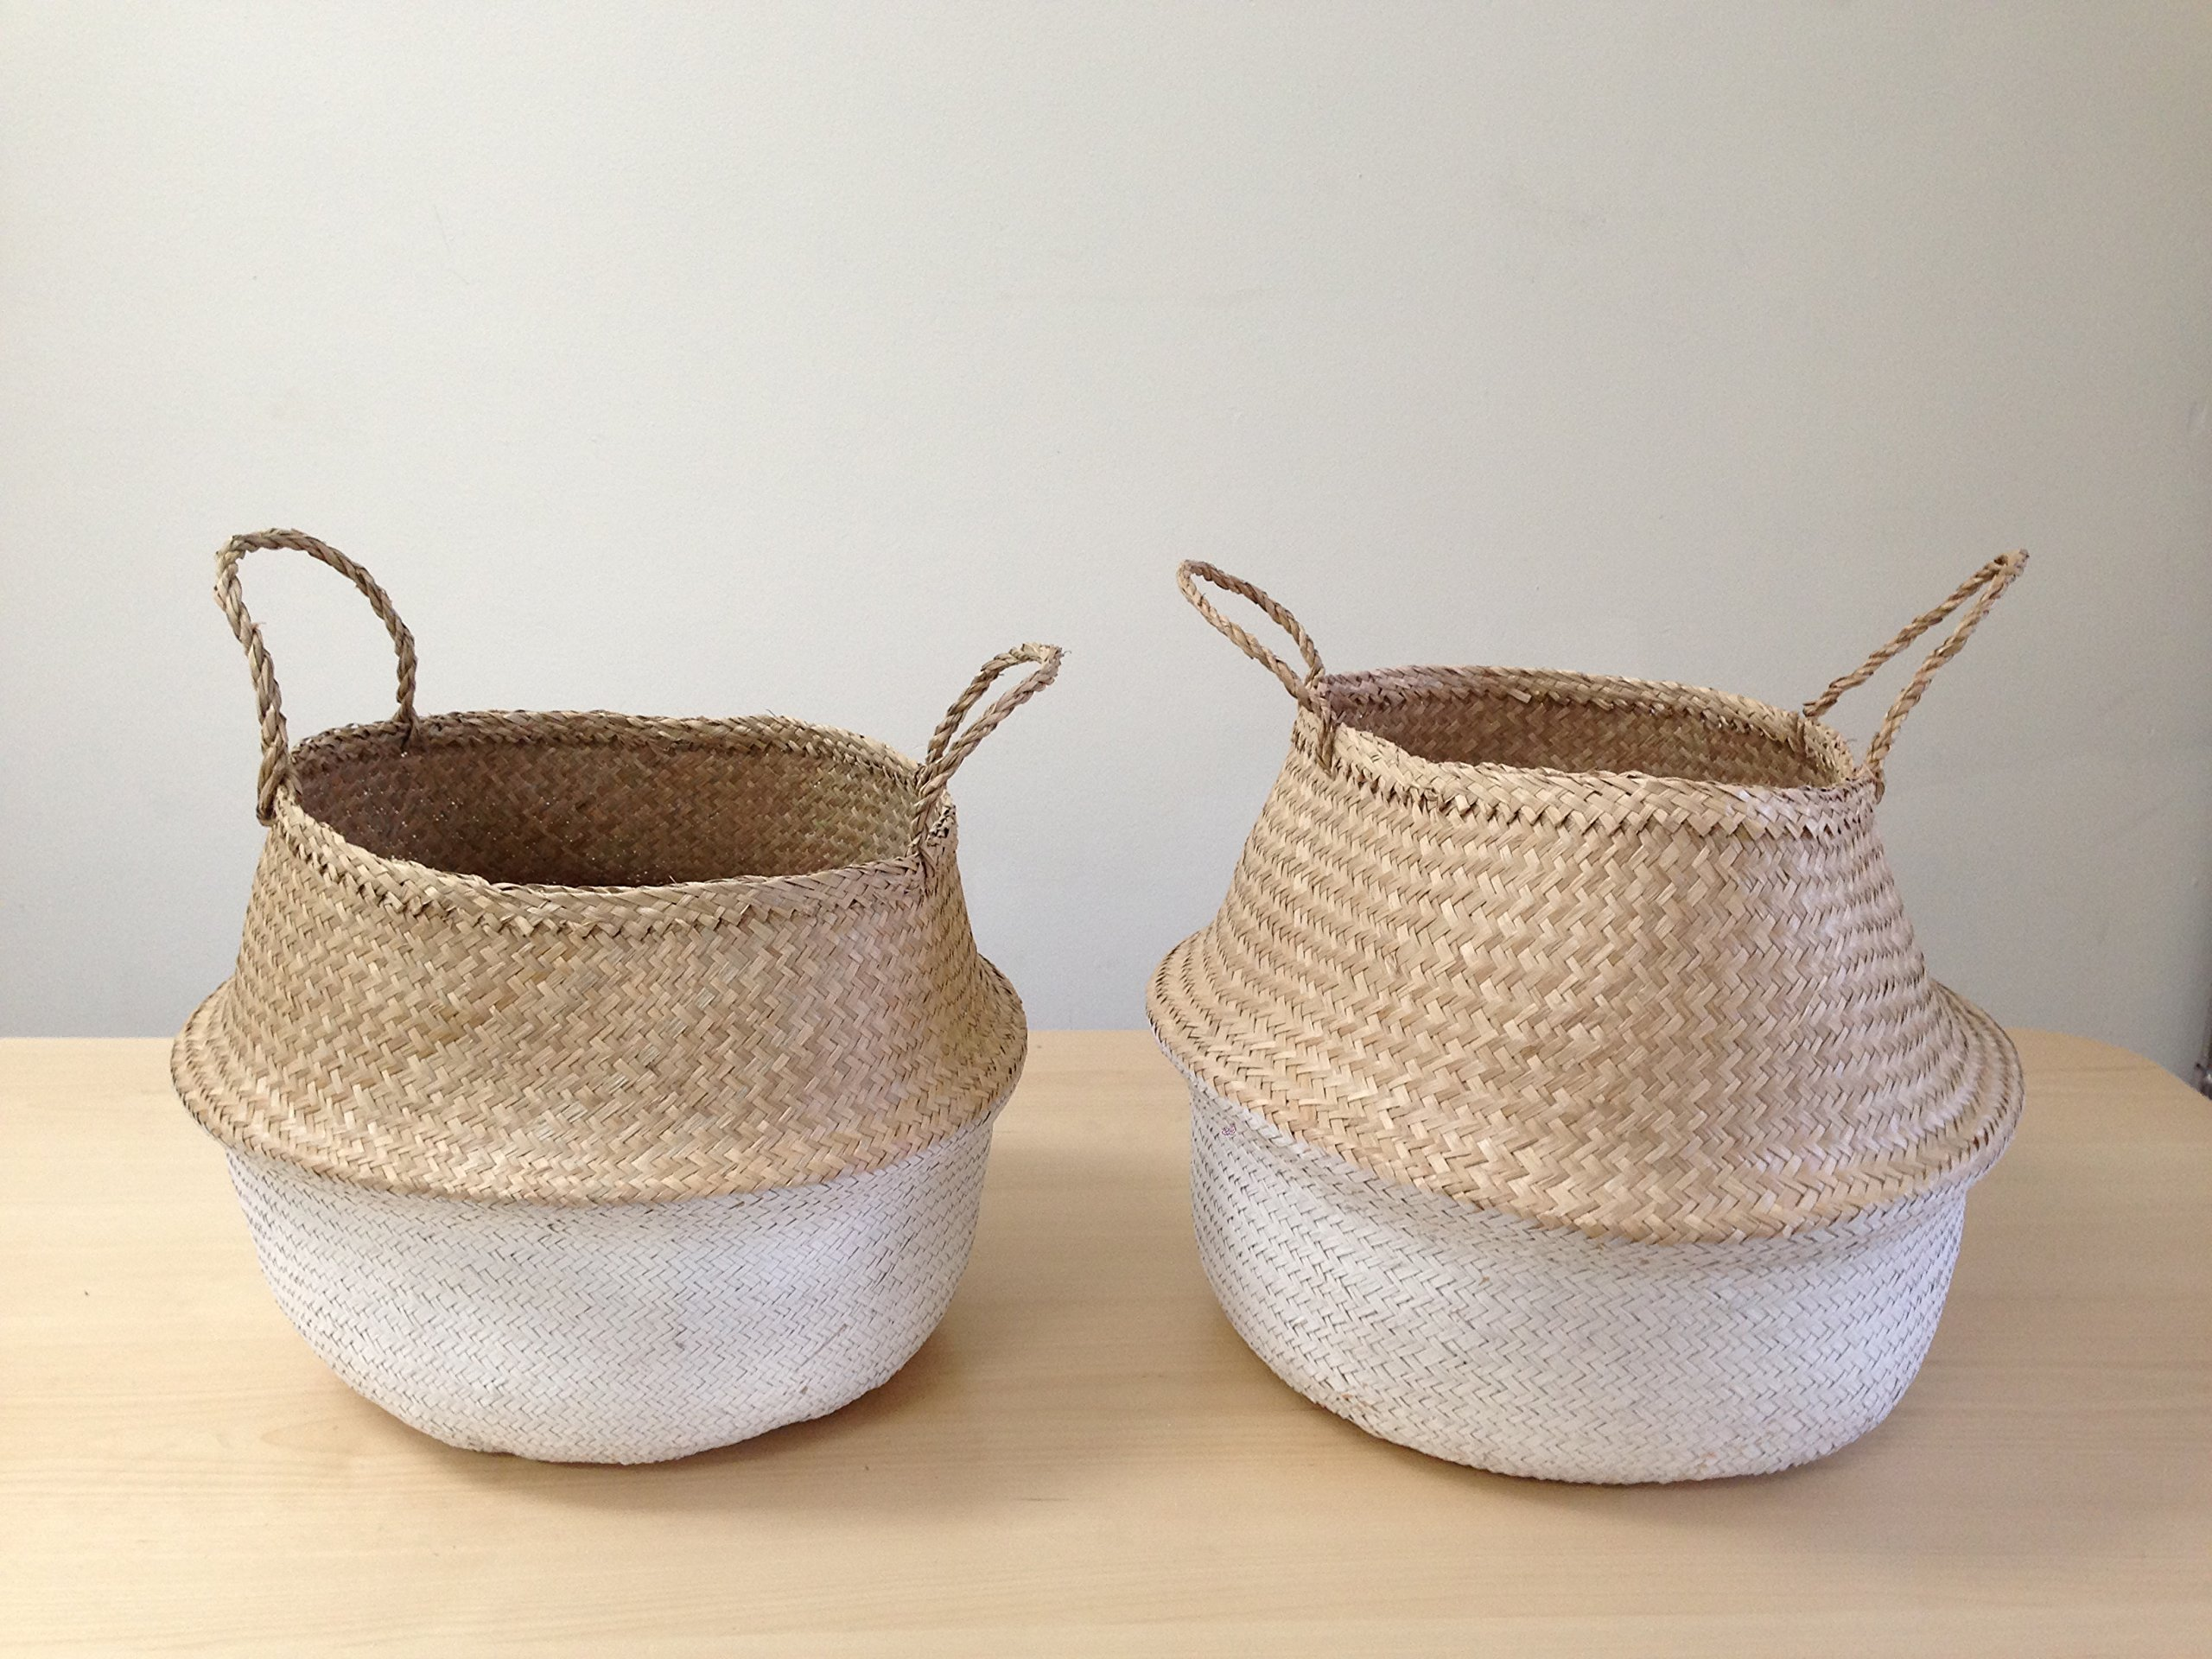 Dipped White Sea Grass Belly Basket Panier Boule Storage Nursery Toy Laundry Easter (Small) - PRICE IS FOR ONE (1) PIECE, SIZE AS DESCRIBED. Handmade and Natural material may differ in textures, size and color. Beautiful and practical natural dip dyed white handwoven sea grass baskets, some remaining white paint flakes may still come off. - living-room-decor, living-room, baskets-storage - 91rAmb fsyL -